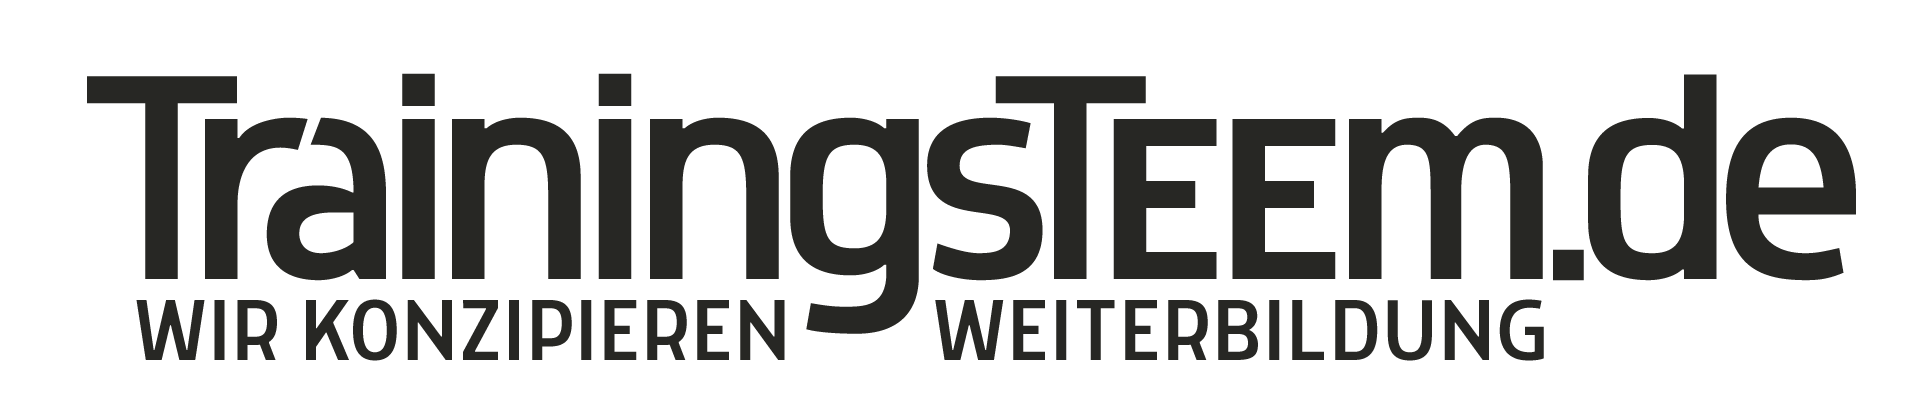 TrainingsTeem.de Logo